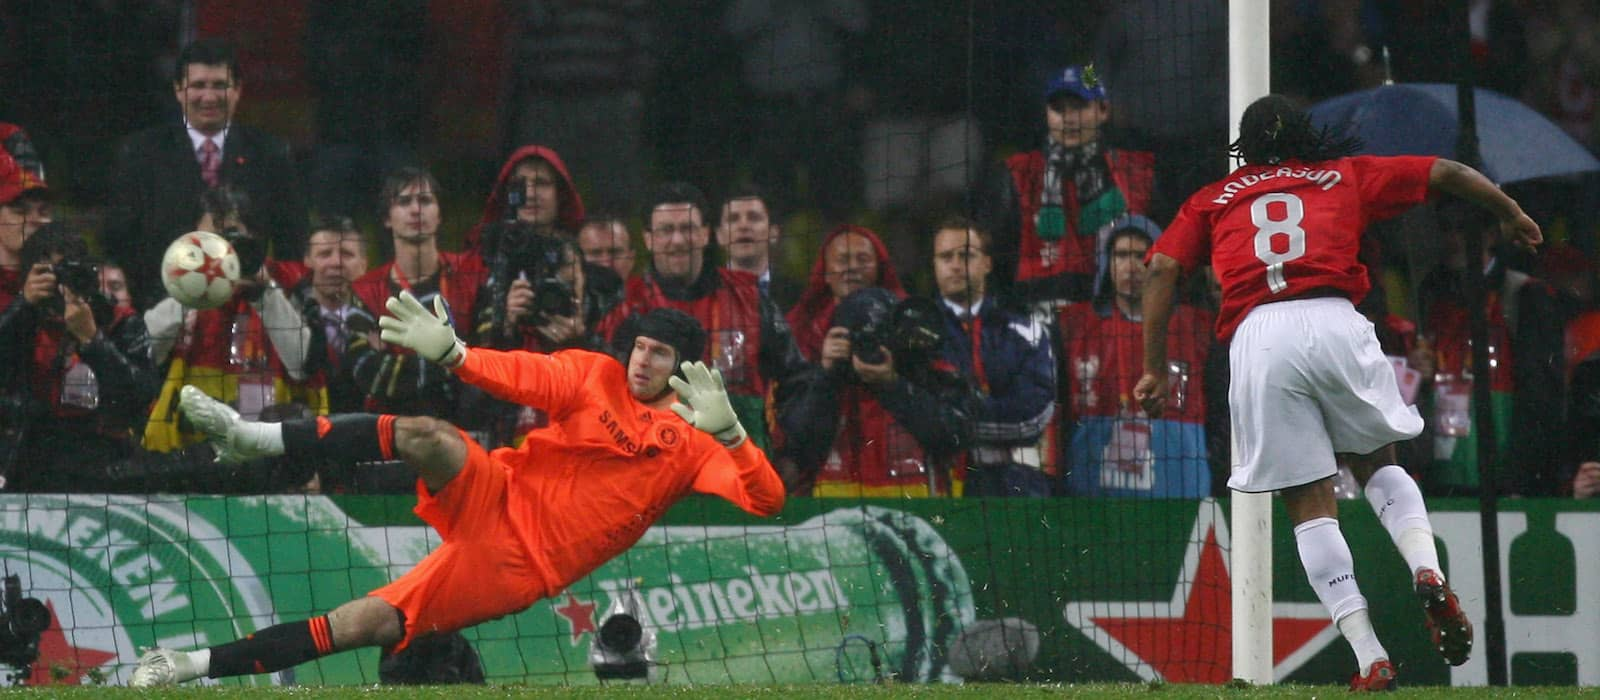 Anderson recalls taking a penalty in the 2008 Champions League final